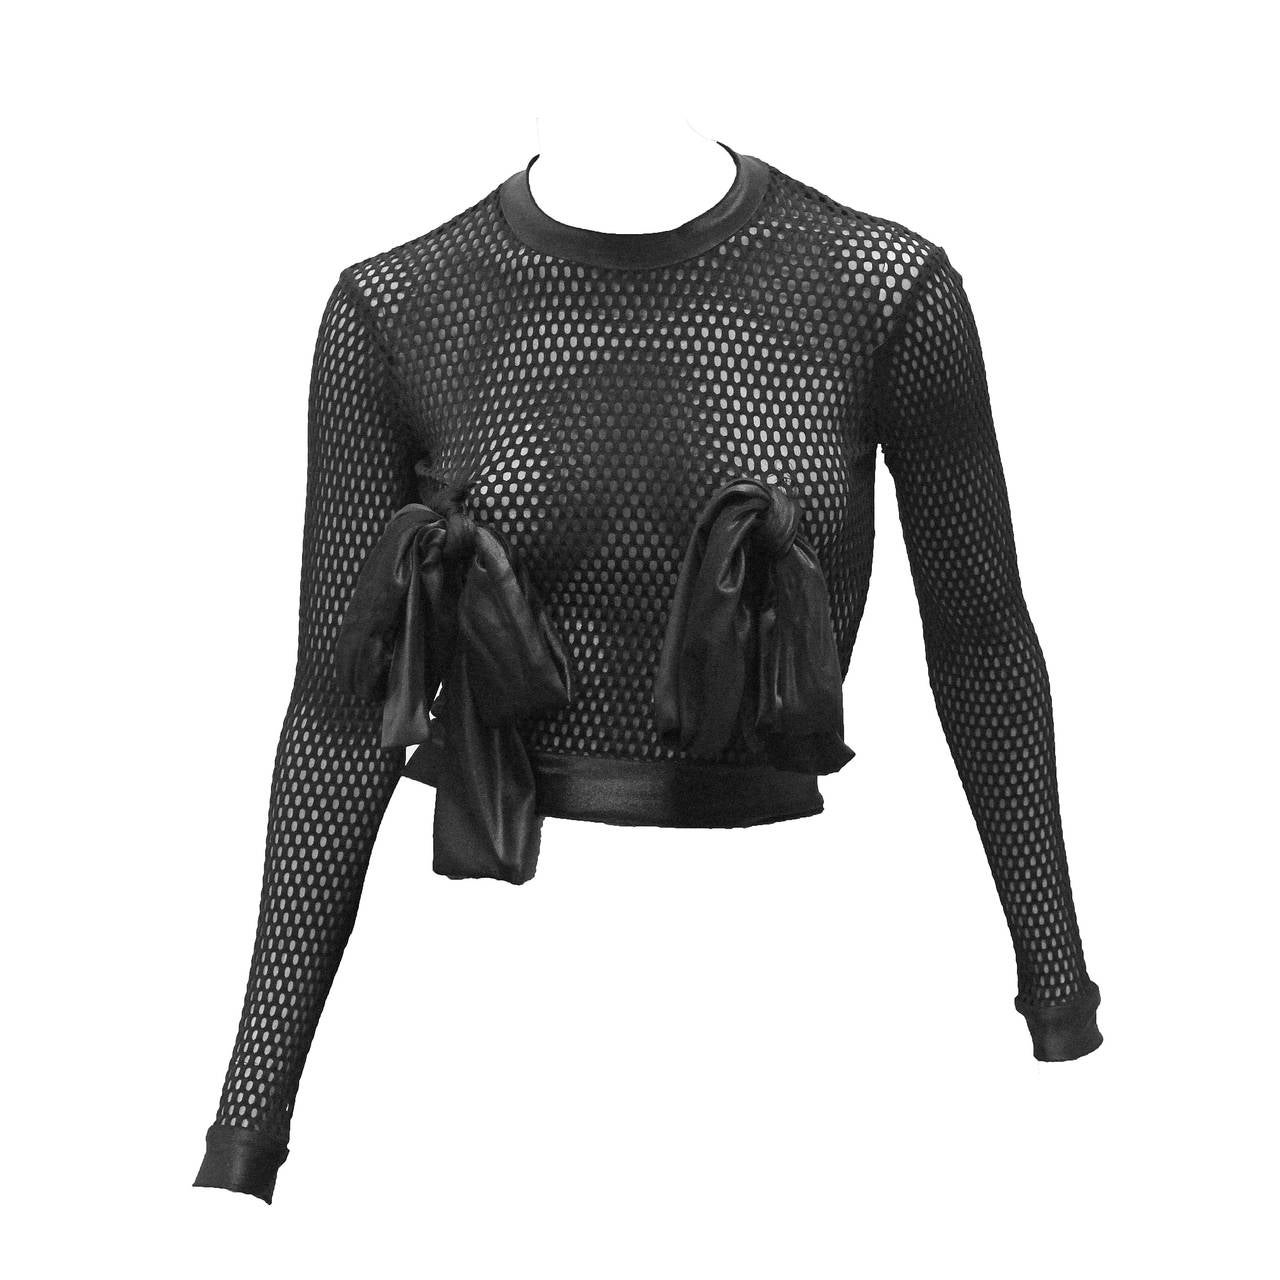 Rare 1990s Pam Hogg Mesh Bow Breast Top For Sale